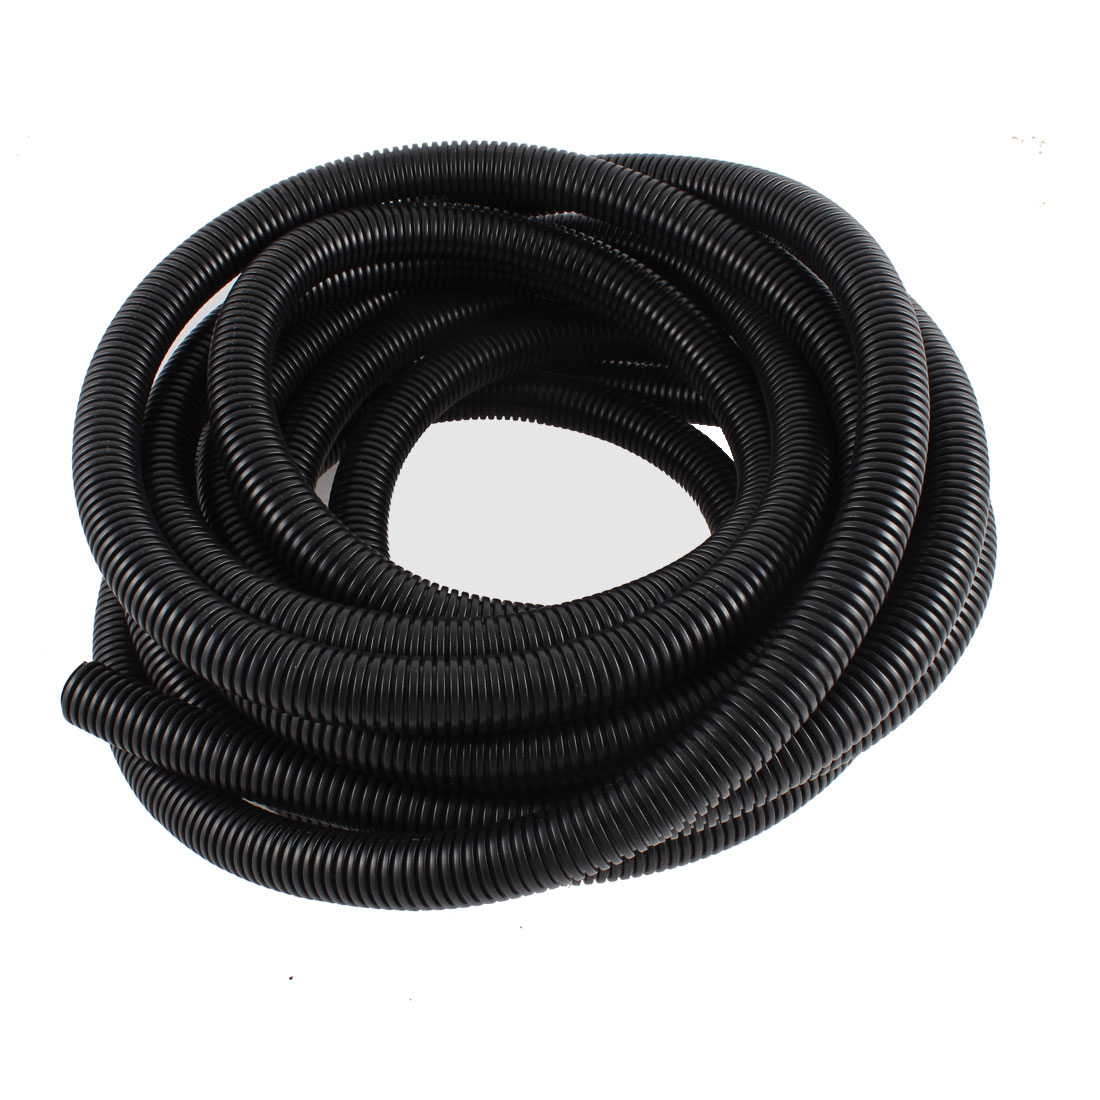 Black Flexible Bellows Hose Corrugated Tube Tubing 8M Length 21.2mm Dia